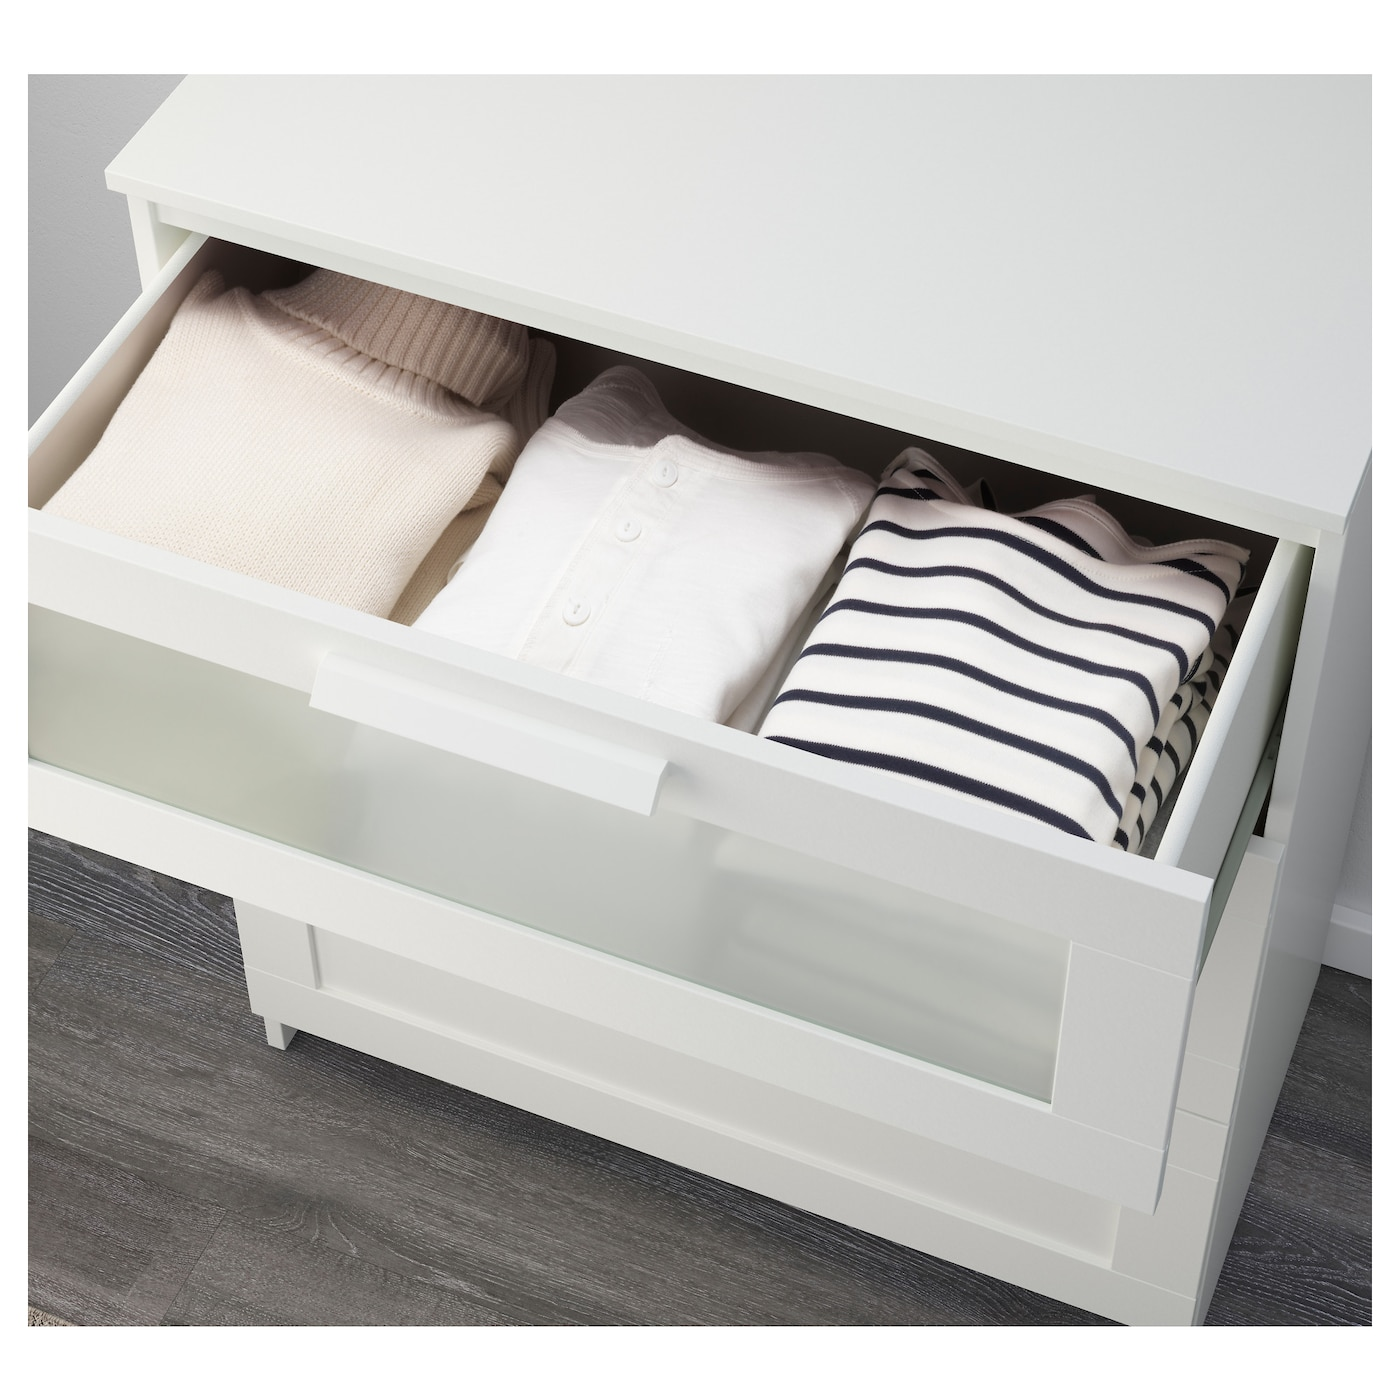 #726359 BRIMNES Chest Of 3 Drawers White/frosted Glass 78x95 Cm IKEA with 2000x2000 px of Brand New Ikea 3 Drawer Dresser White 20002000 pic @ avoidforclosure.info